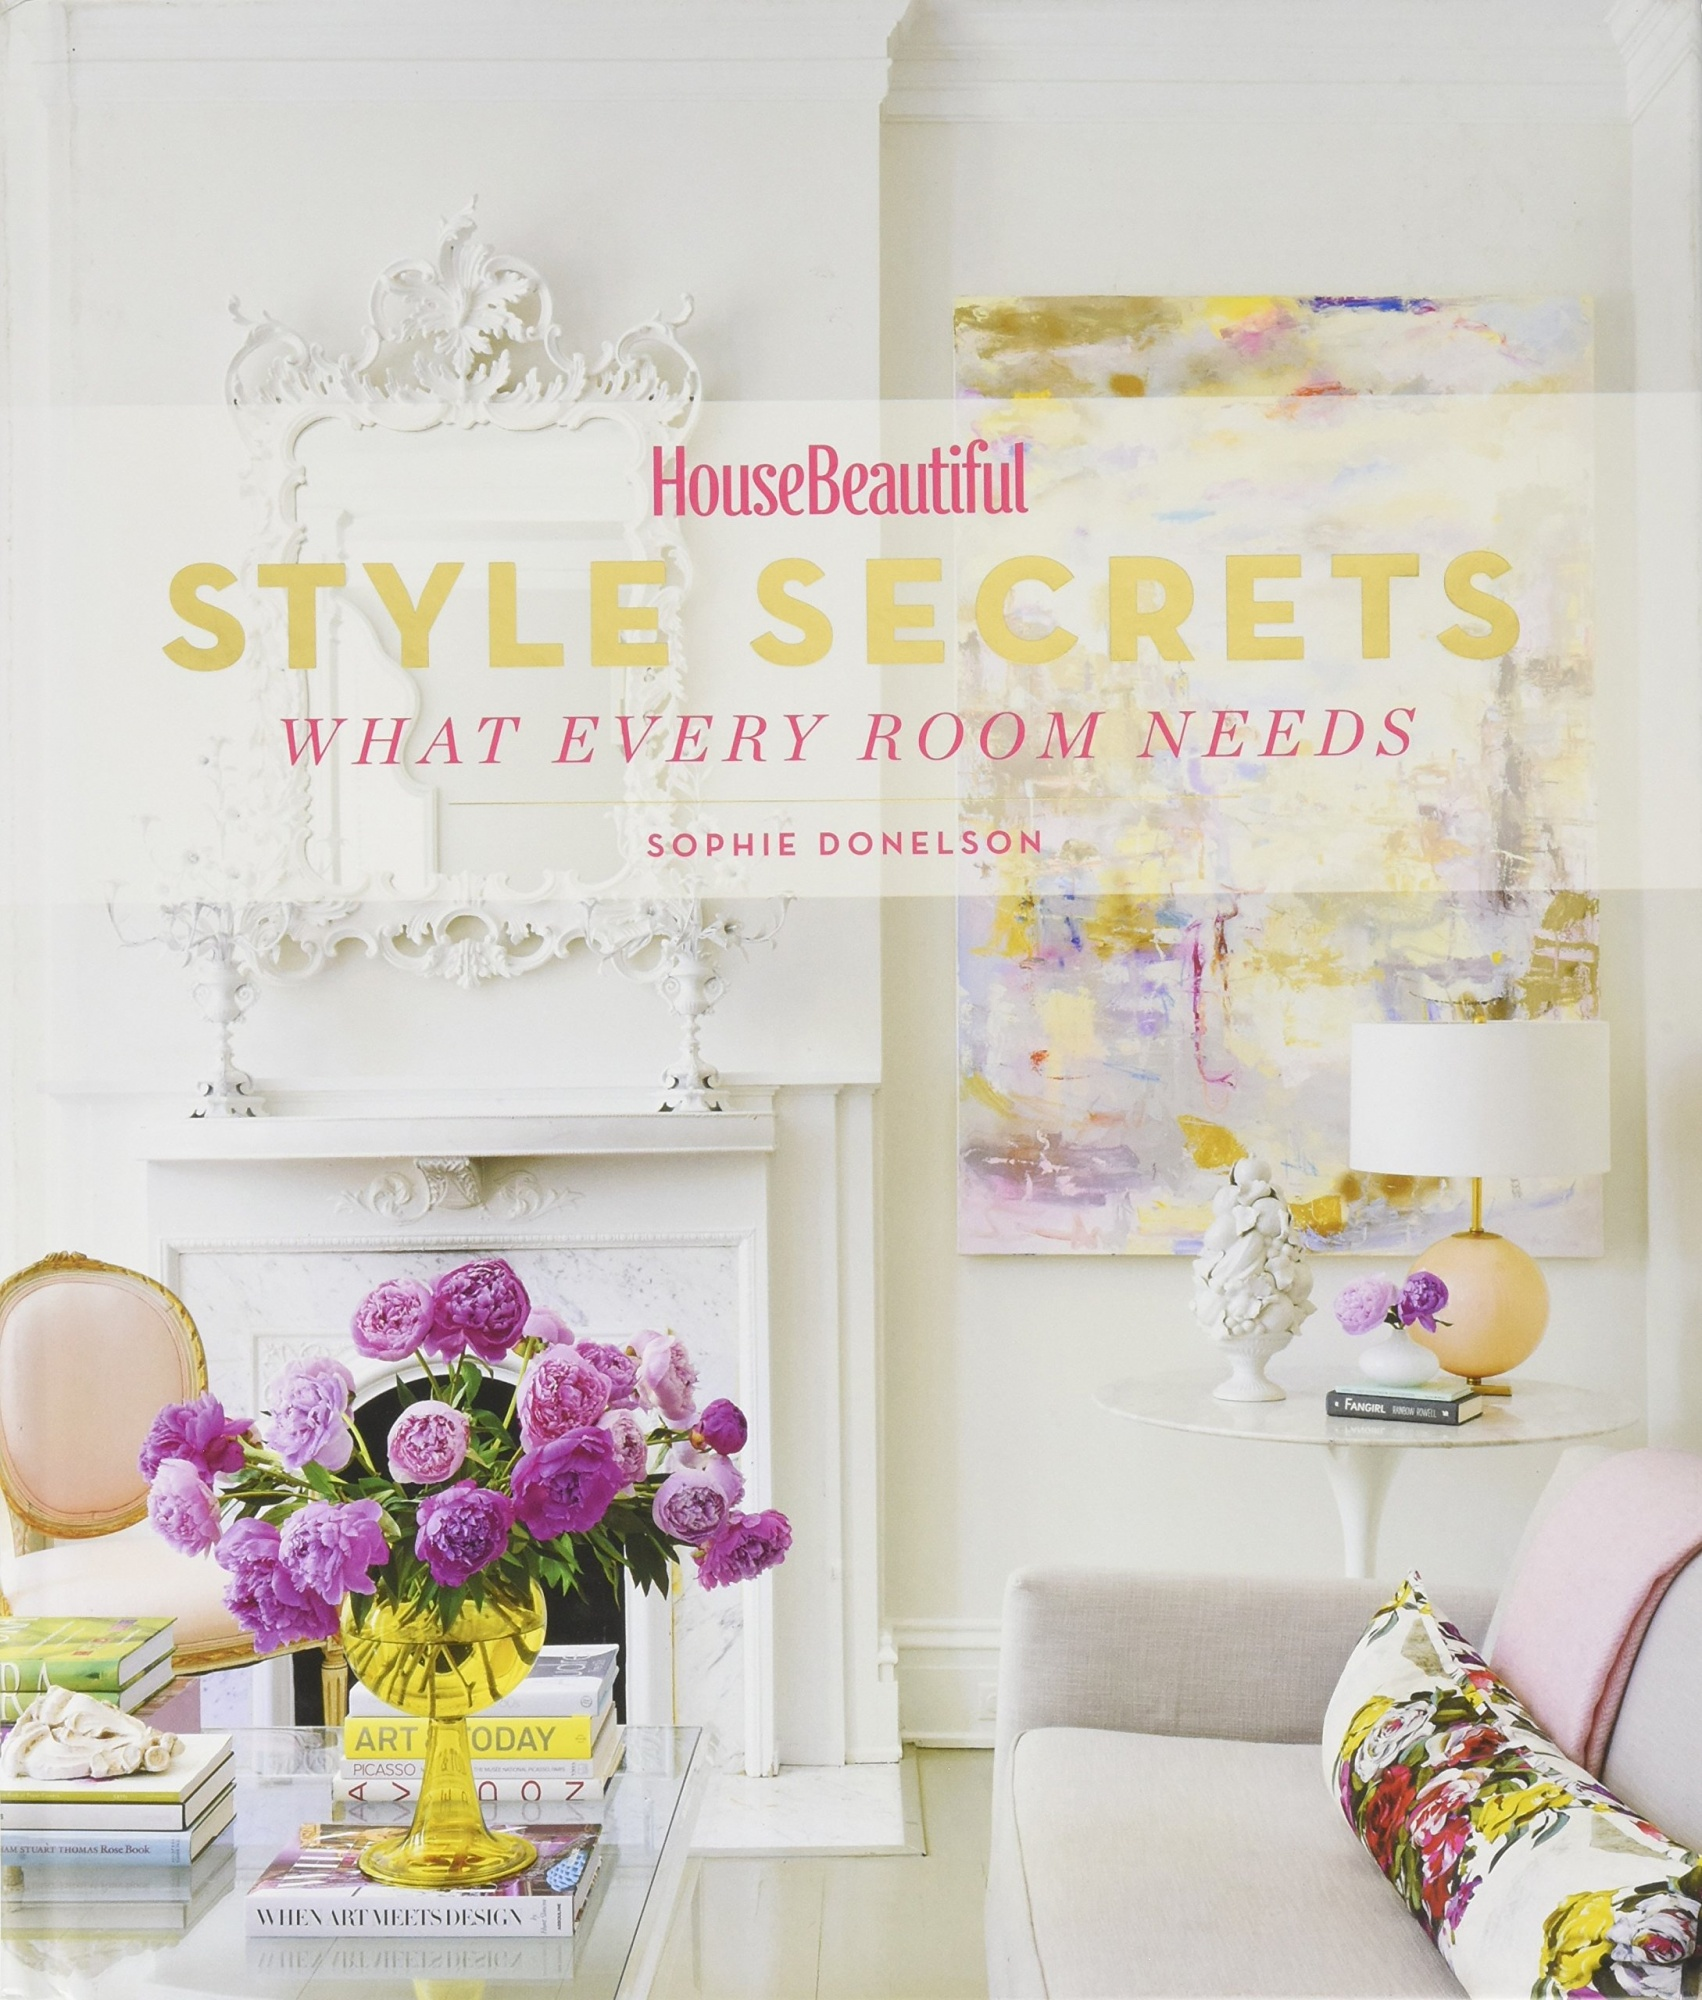 House Beautiful Style SecretsWhat Every Room Needs by Sophie Donelson, ISBN: 9781419726576